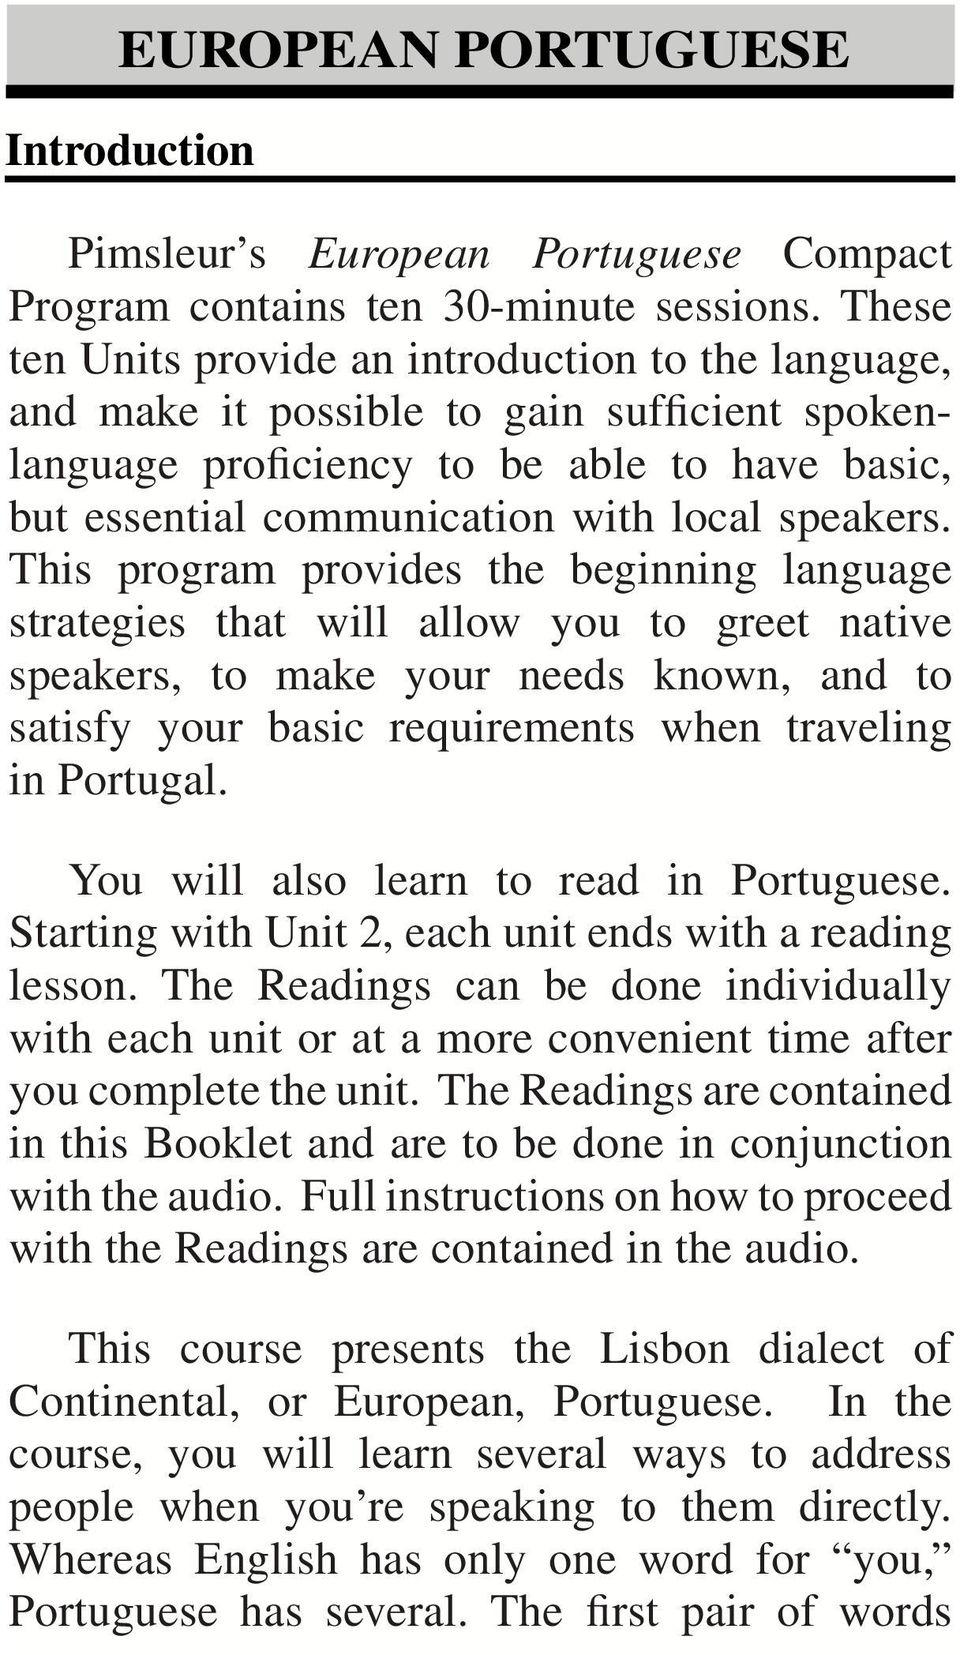 This program provides the beginning language strategies that will allow you to greet native speakers, to make your needs known, and to satisfy your basic requirements when traveling in Portugal.